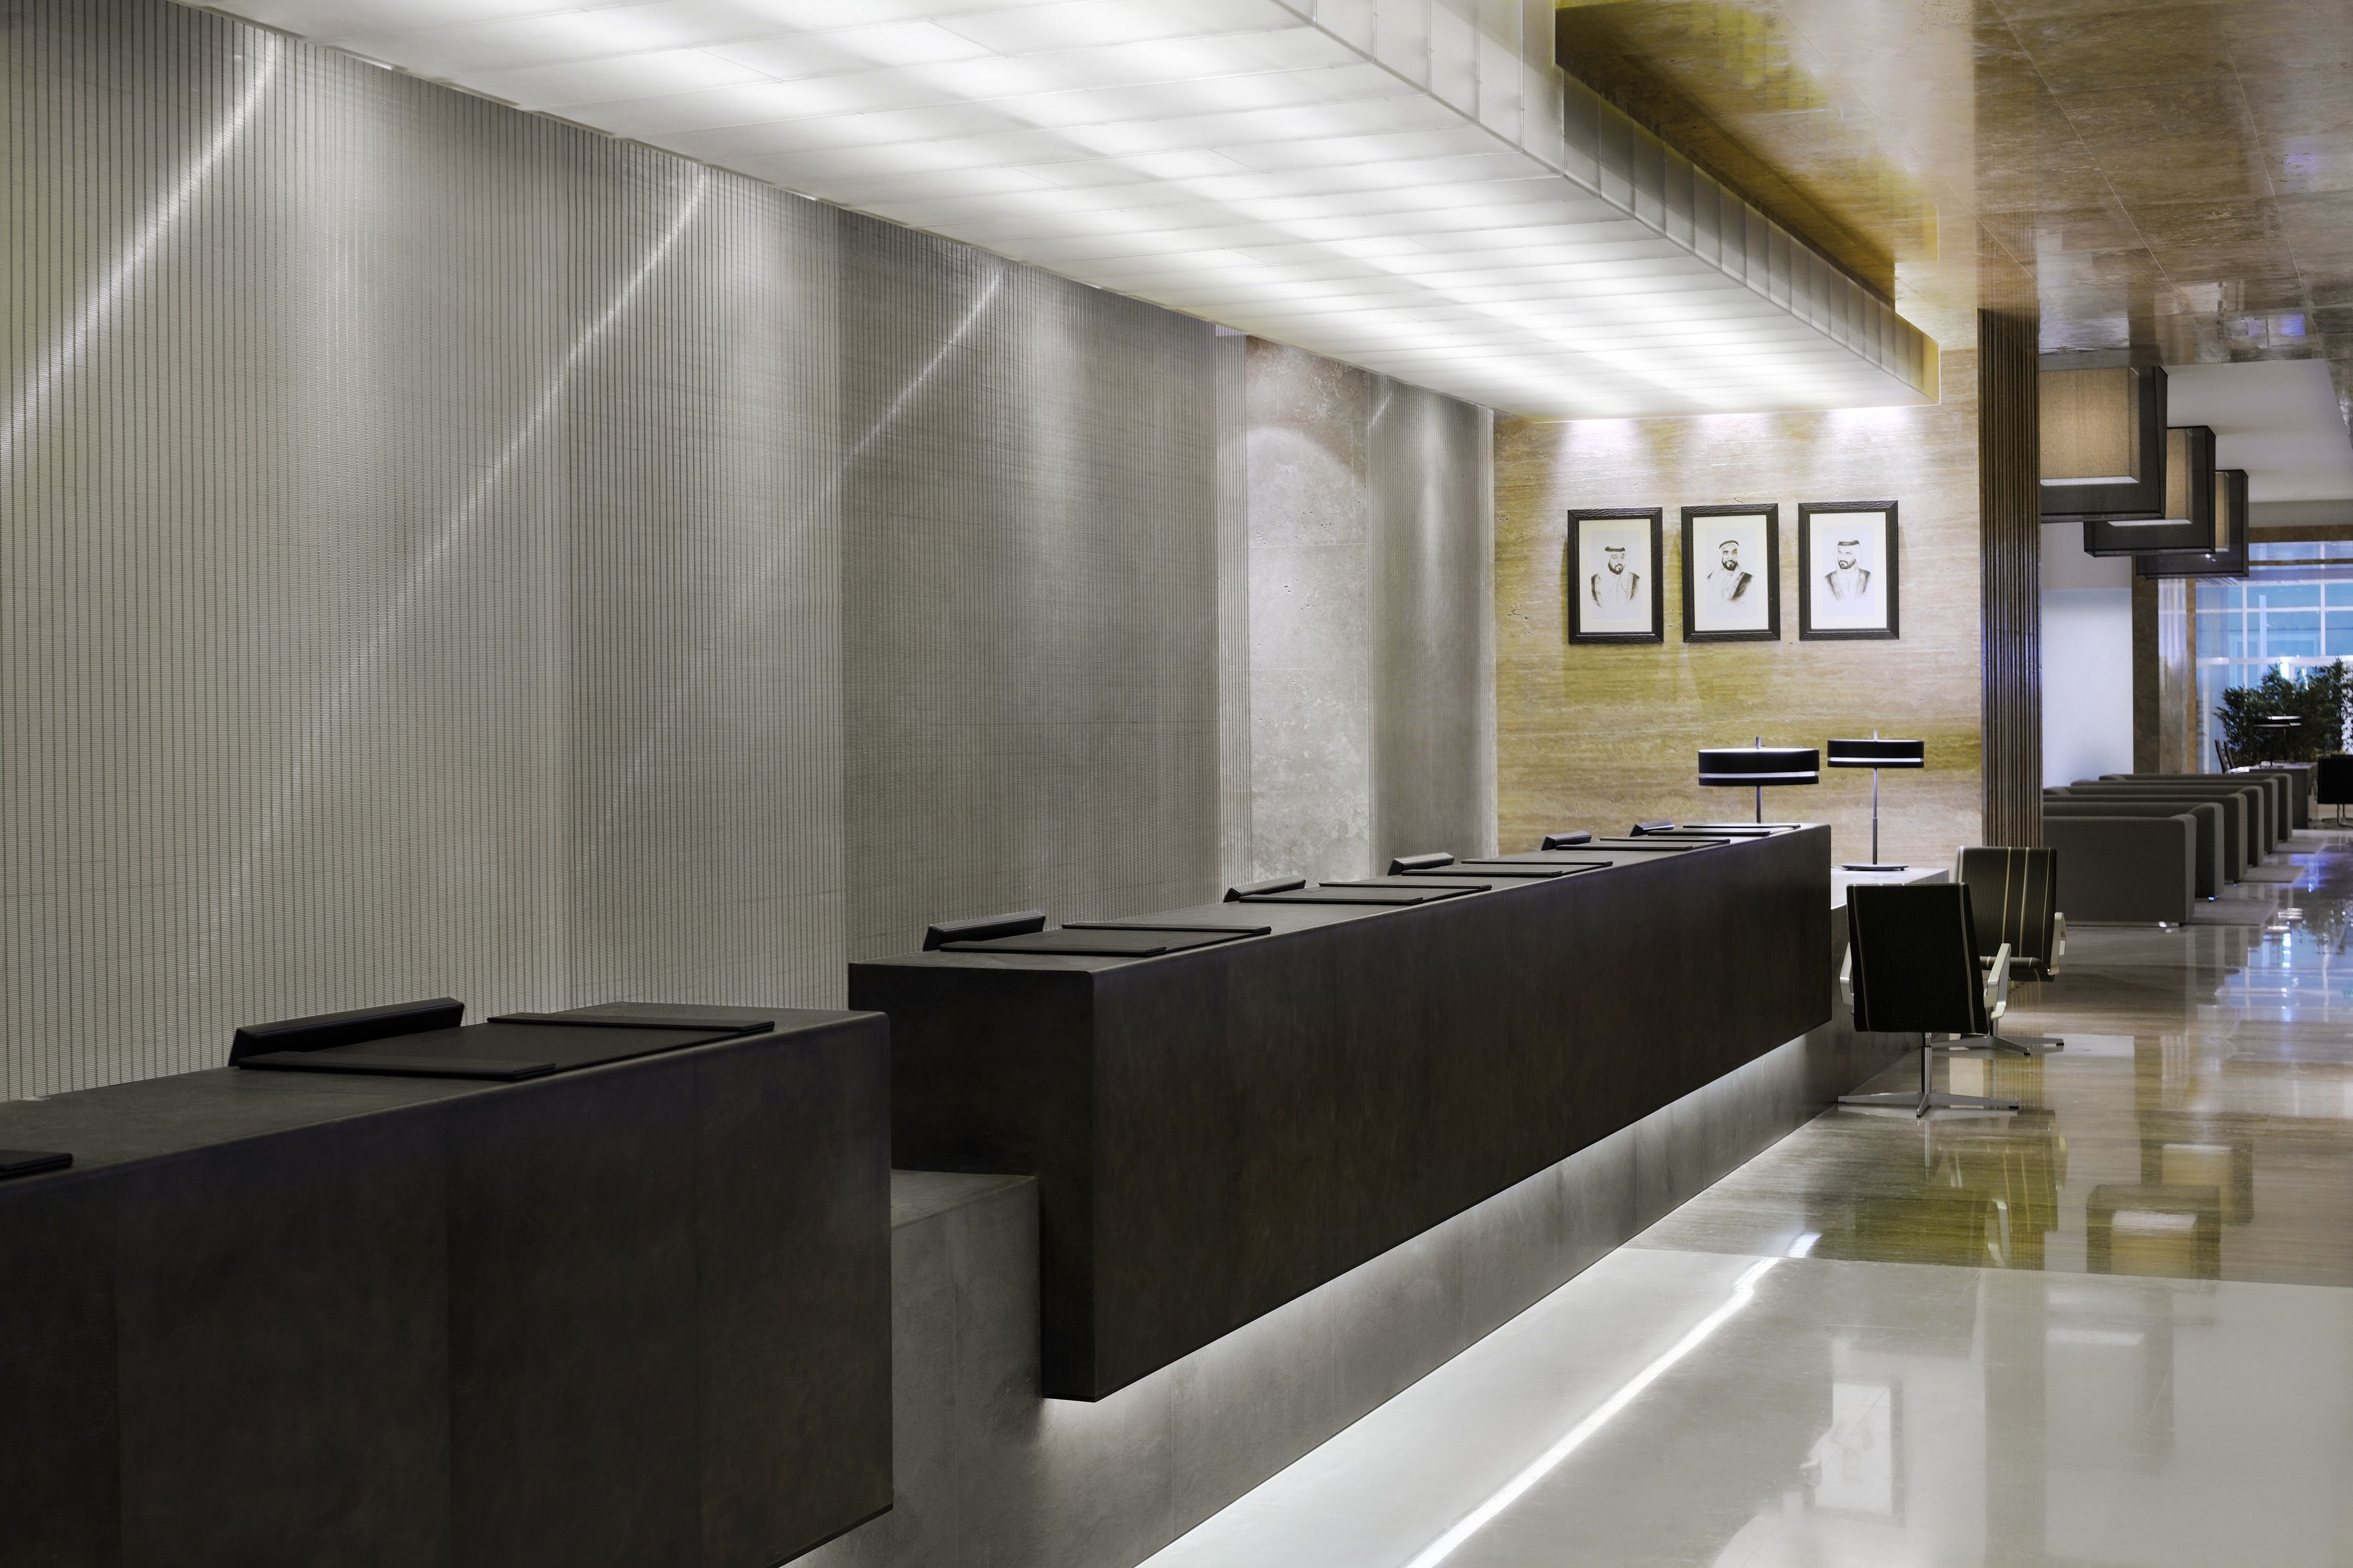 Hotel counter designs joy studio design gallery best for Design hotel reception